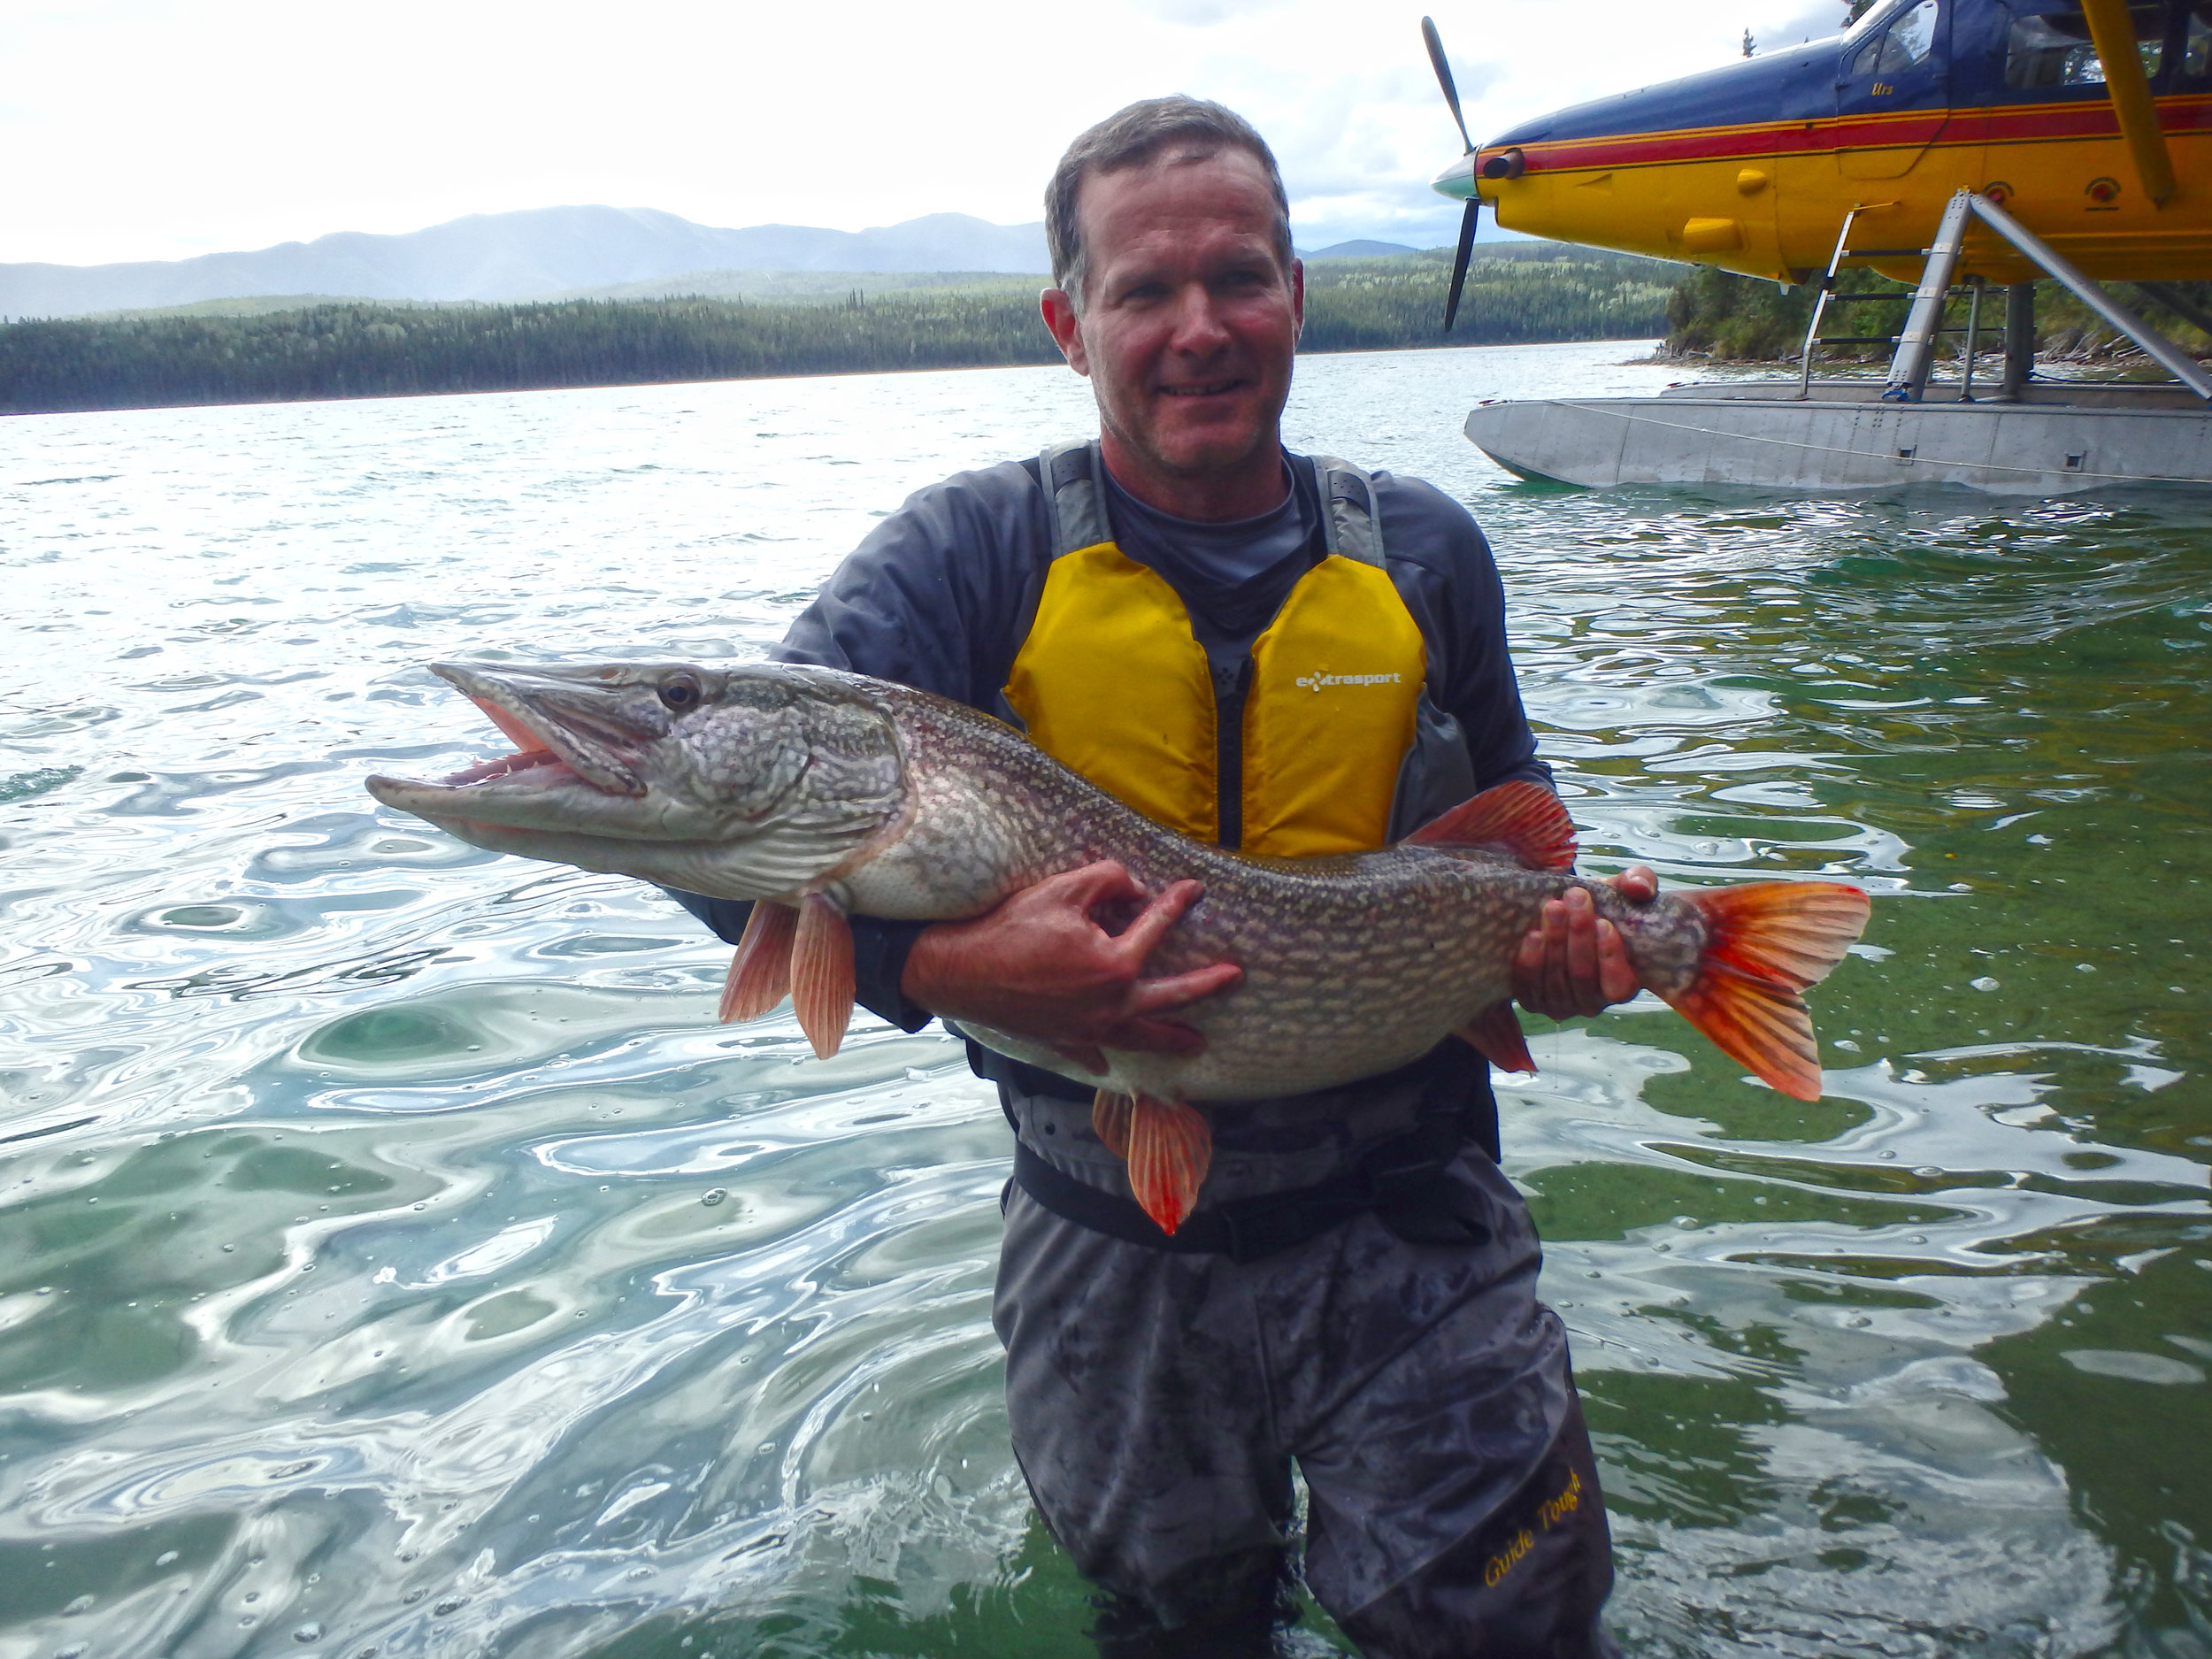 3 NIGHT/ 1 DAY FLY-IN FISHING SAMPLE - 3 NIGHTS ACCOMMODATION WITH DINNERS AND BREAKFASTSFROM MUNCHO LAKE (1 DAY FLY OUT DAY)Incl. Room starting at $1312 CAD pp + taxesIncl. RV Park starting at $1160 CAD pp. + taxesThis is a sample fly-in fishing trip, where your Guide & Pilot will choose the location and fish species according to weather and time of the year.